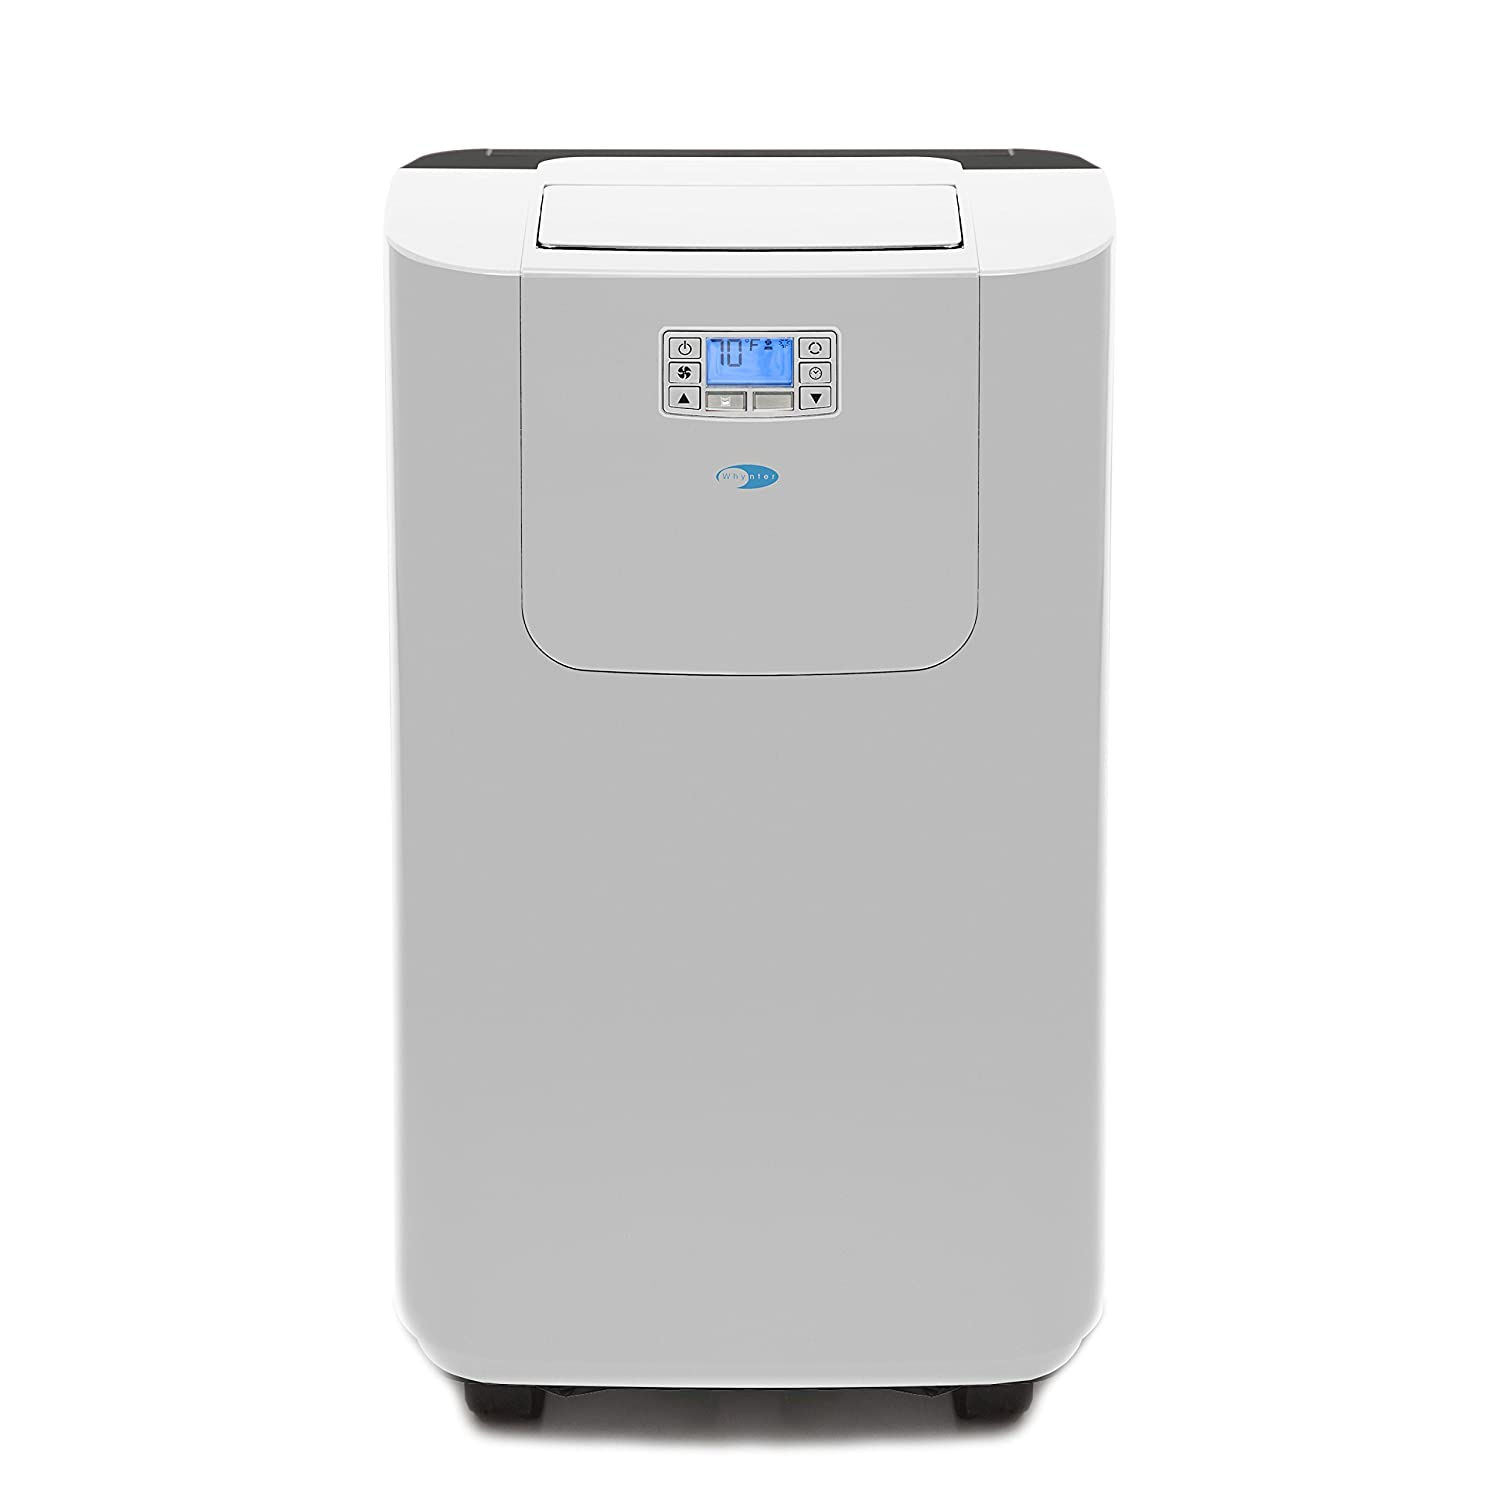 Whynter Elite ARC-122DHP 12,000 BTU Dual Hose Portable Air Conditioner and Heater, Dehumidifier, Fan with Activated Carbon Filter plus Autopump and Storage bag for Rooms up to 400 sq ft